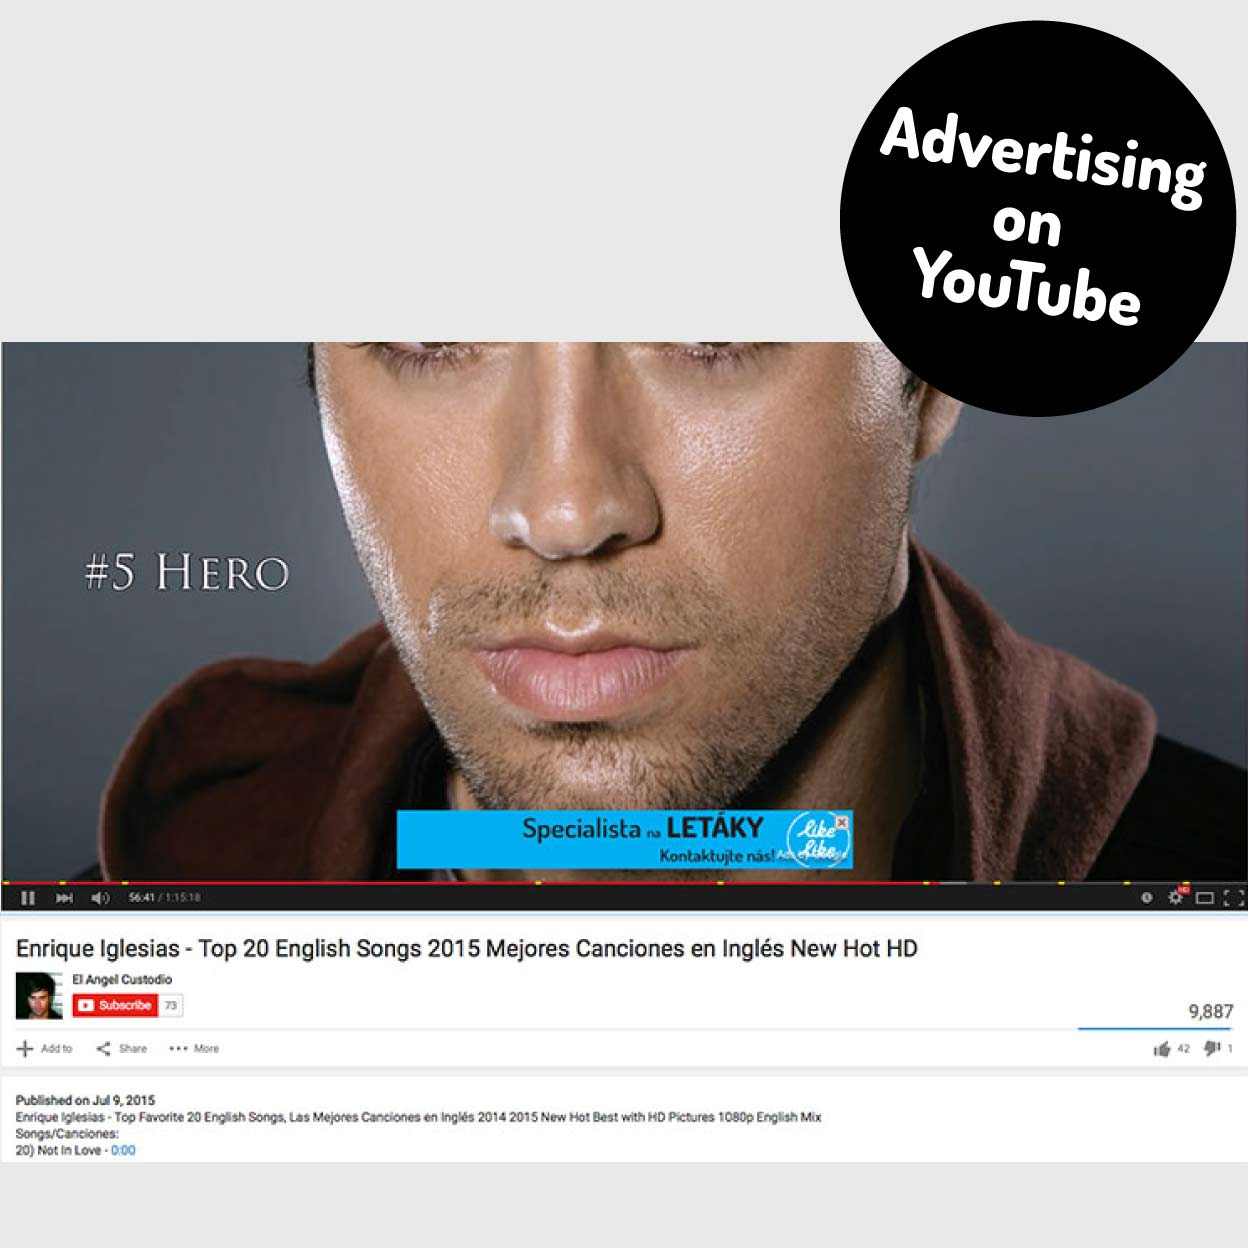 You Tube Advertisment